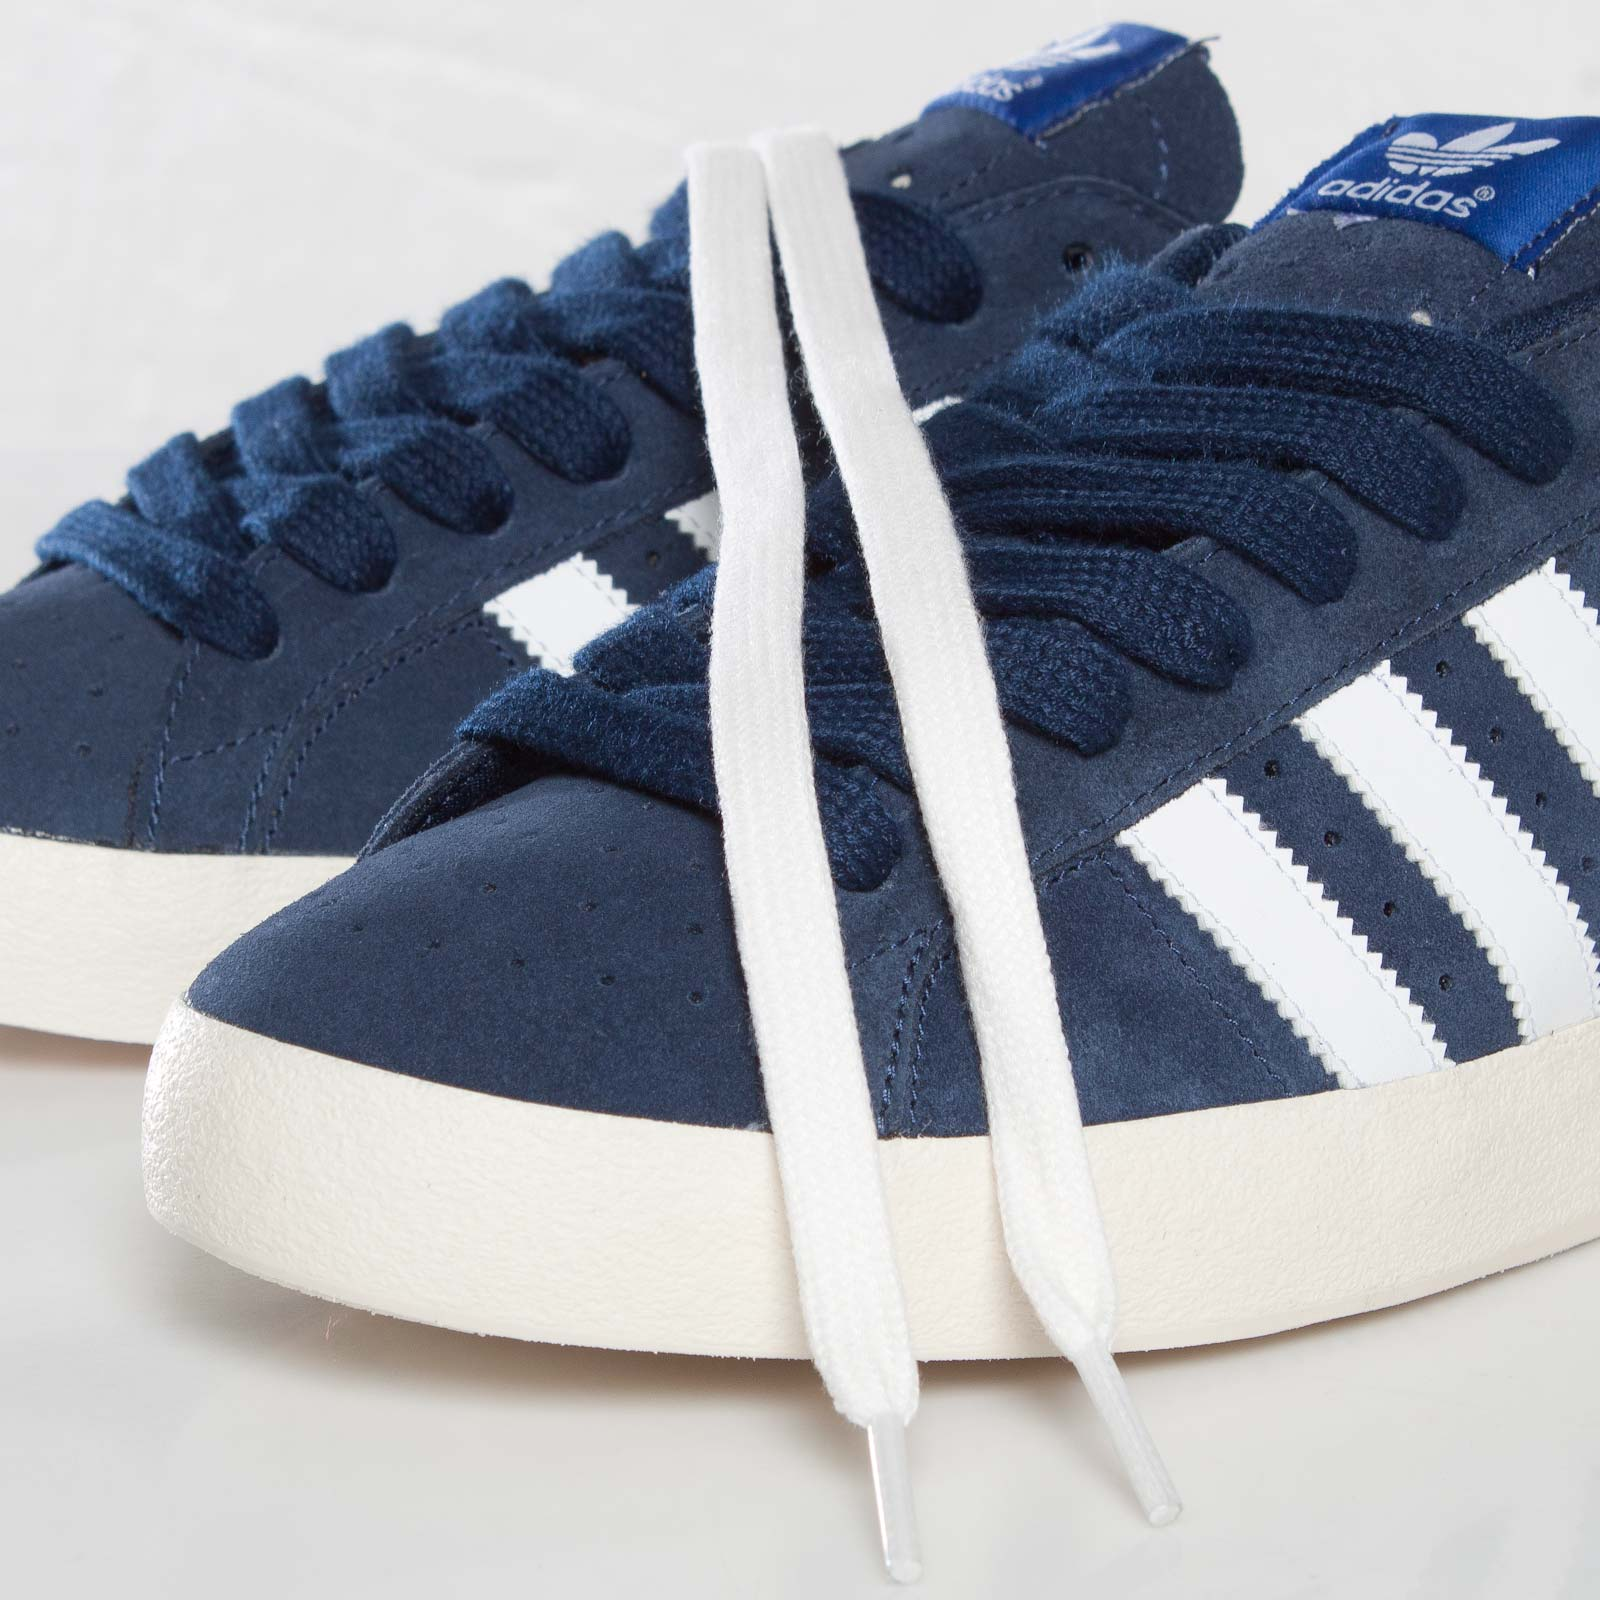 super popular f0a3f 58ce4 ... adidas Basket Profi Lo ...